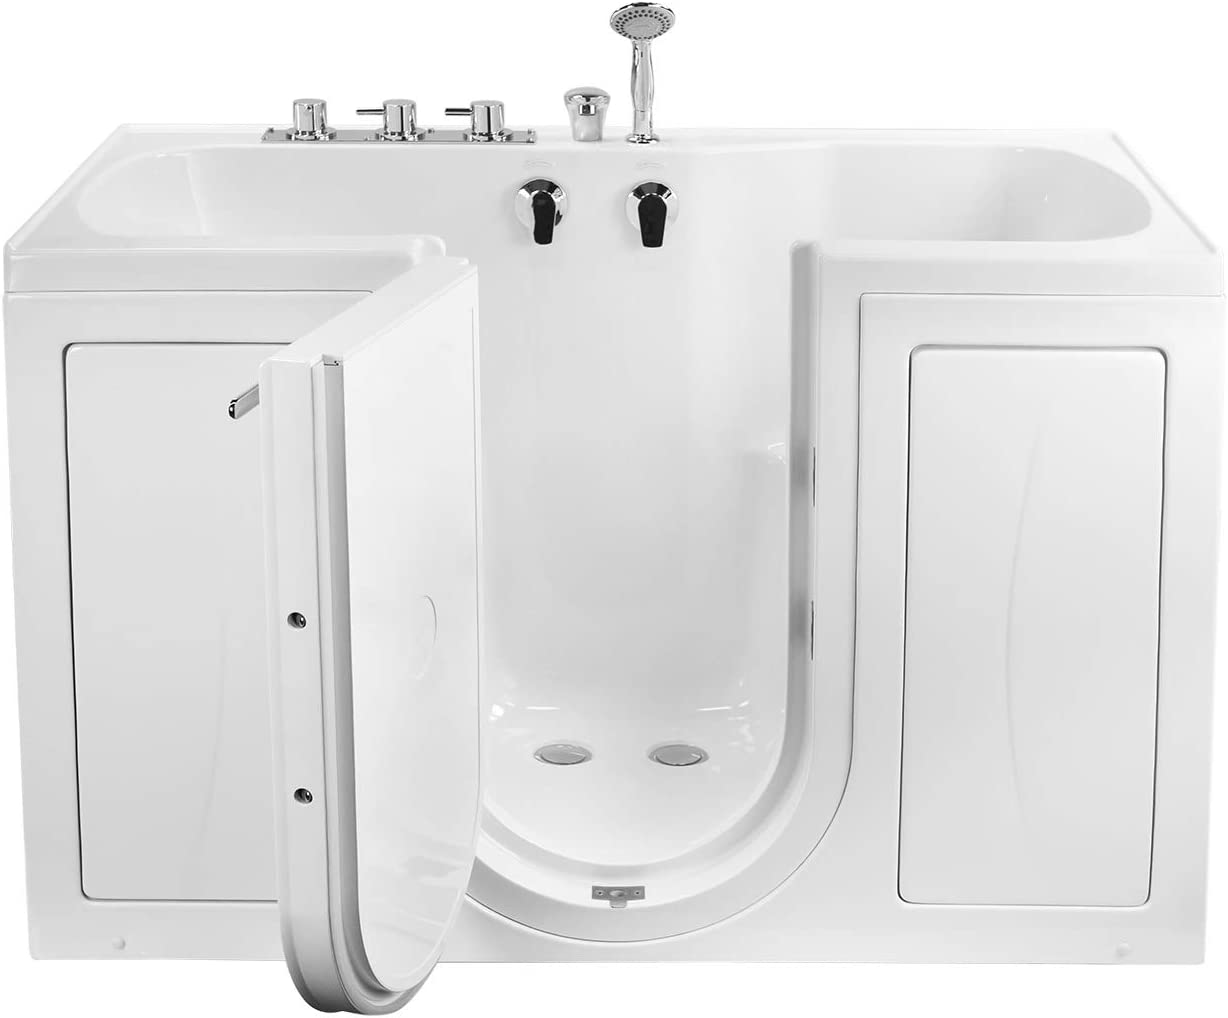 Ella S Bubbles O2sa3260 L Tub4two Acrylic Soaking Walk In Tub With Left Outward Swing Door Thermostatic Faucet Dual 2 Drains 32 X 60 X 42 White Amazon Com